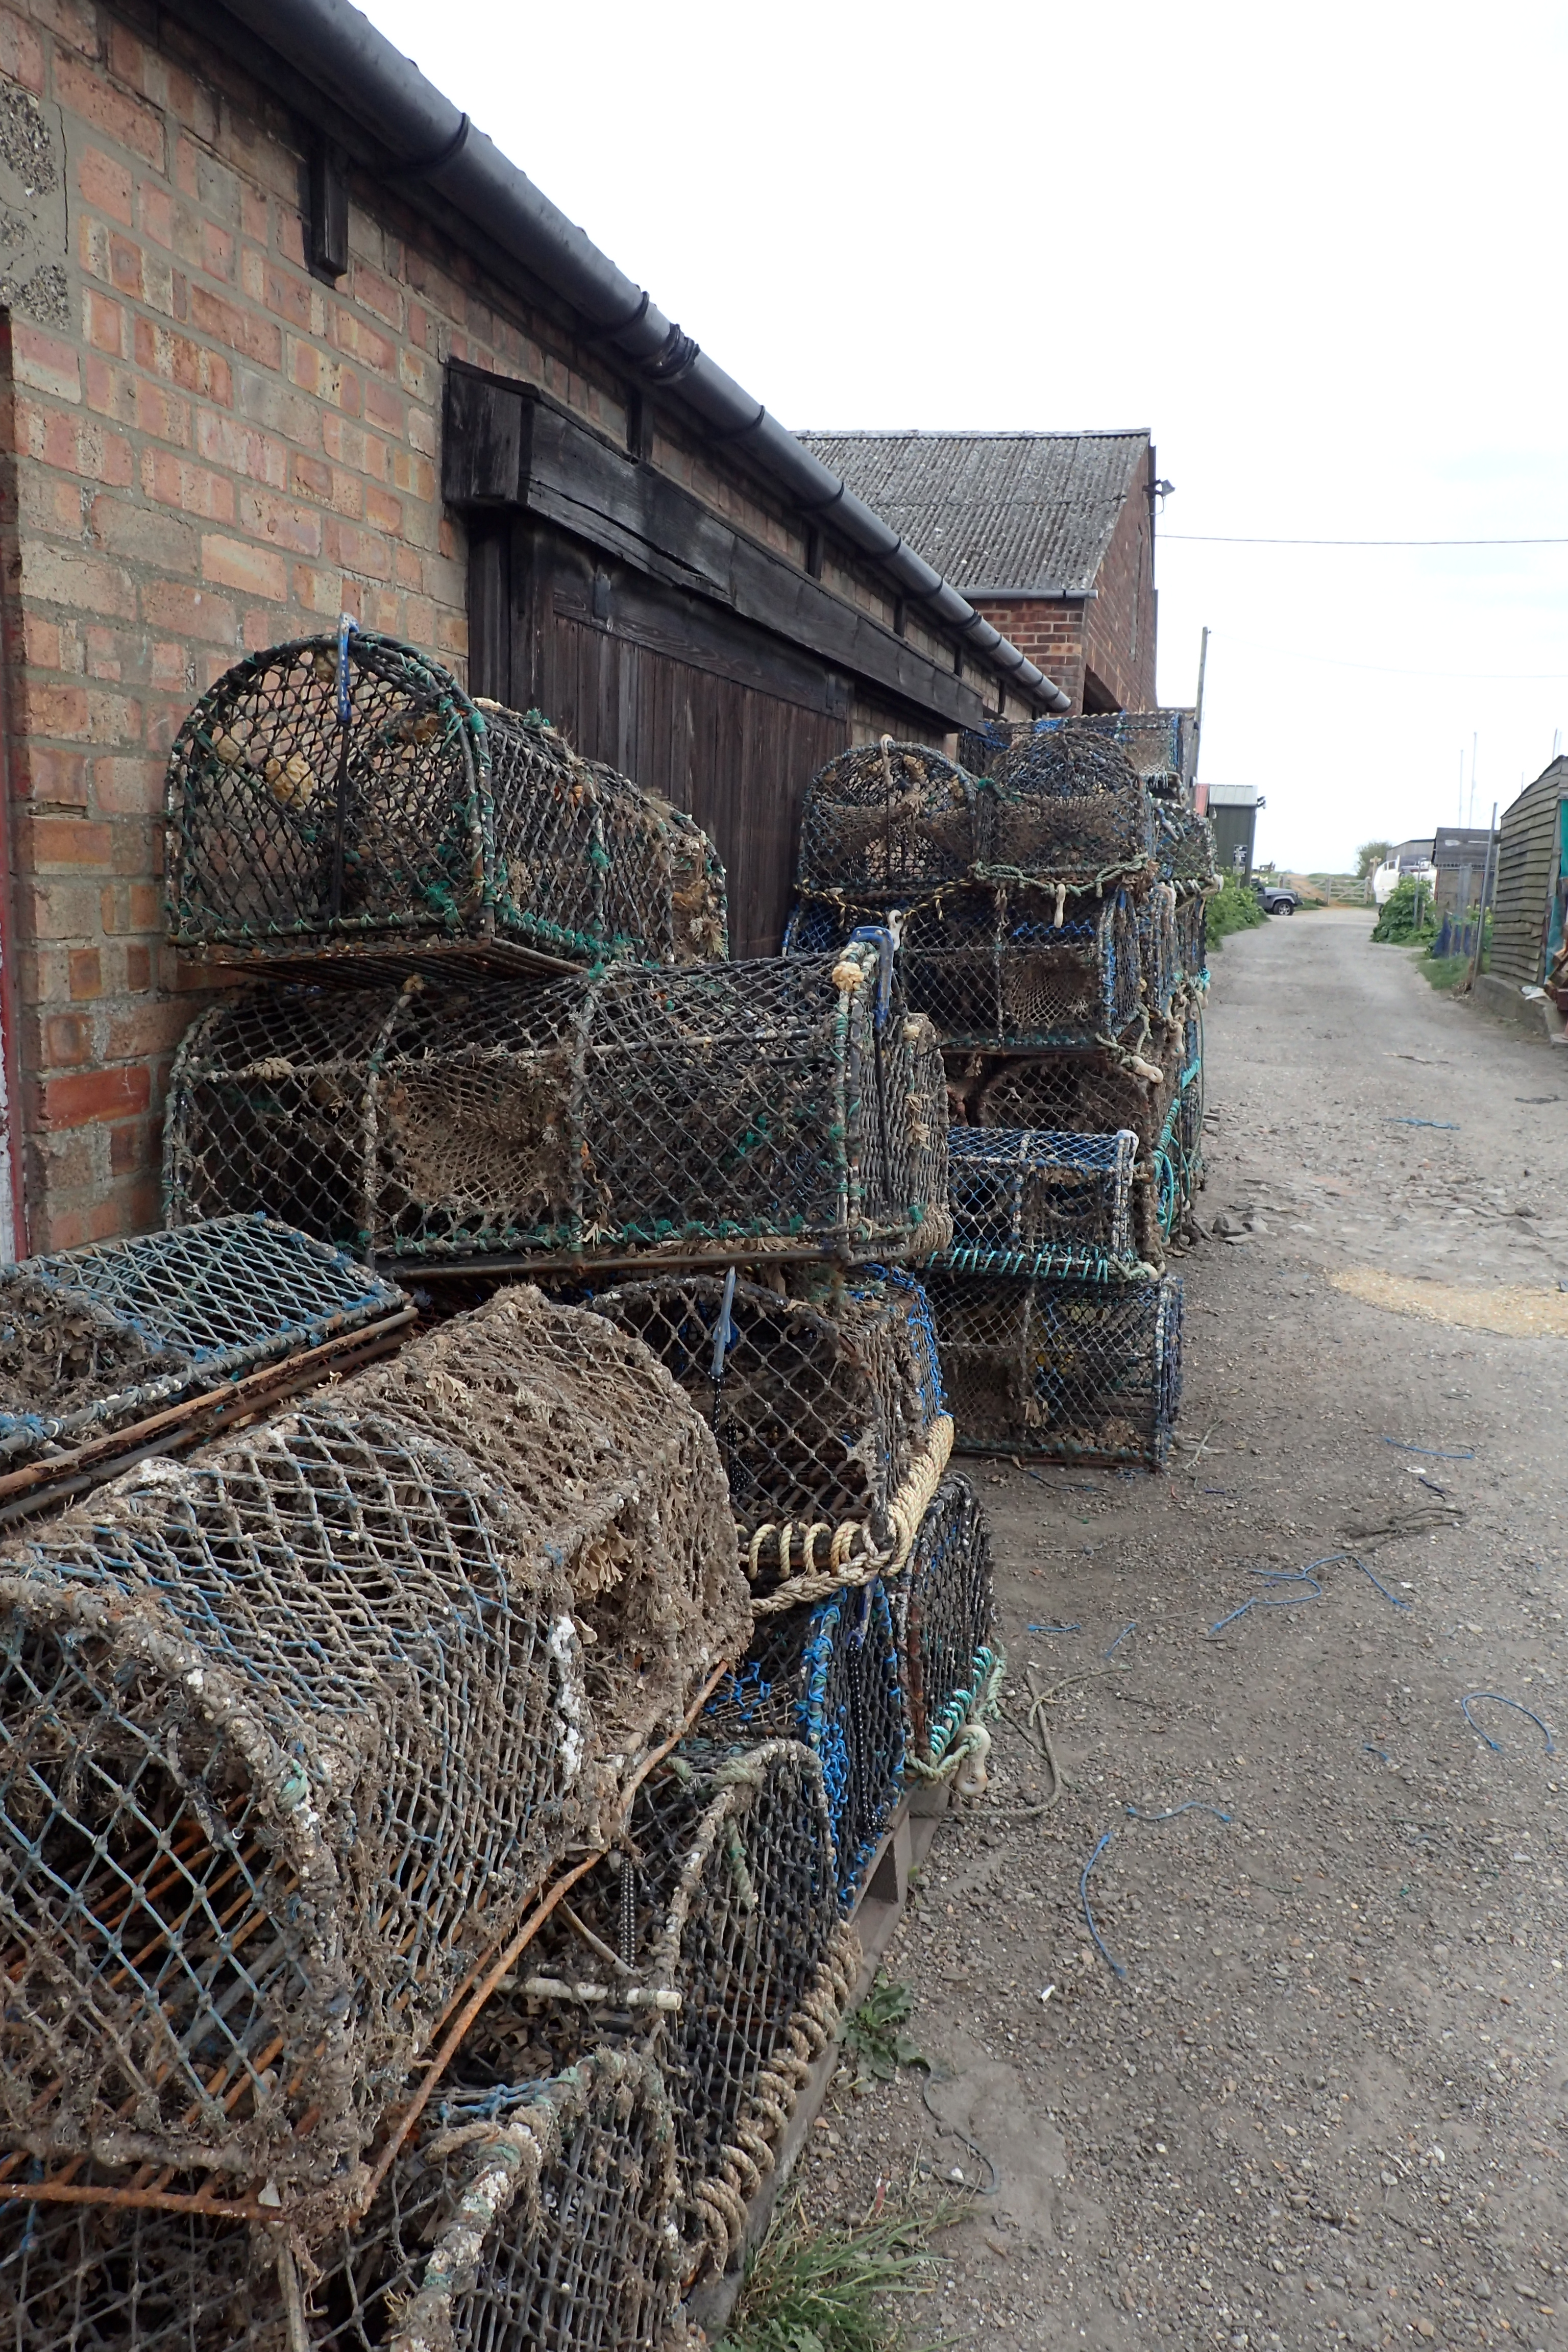 Lobster and Crab pots are set all the way along this part of the coast